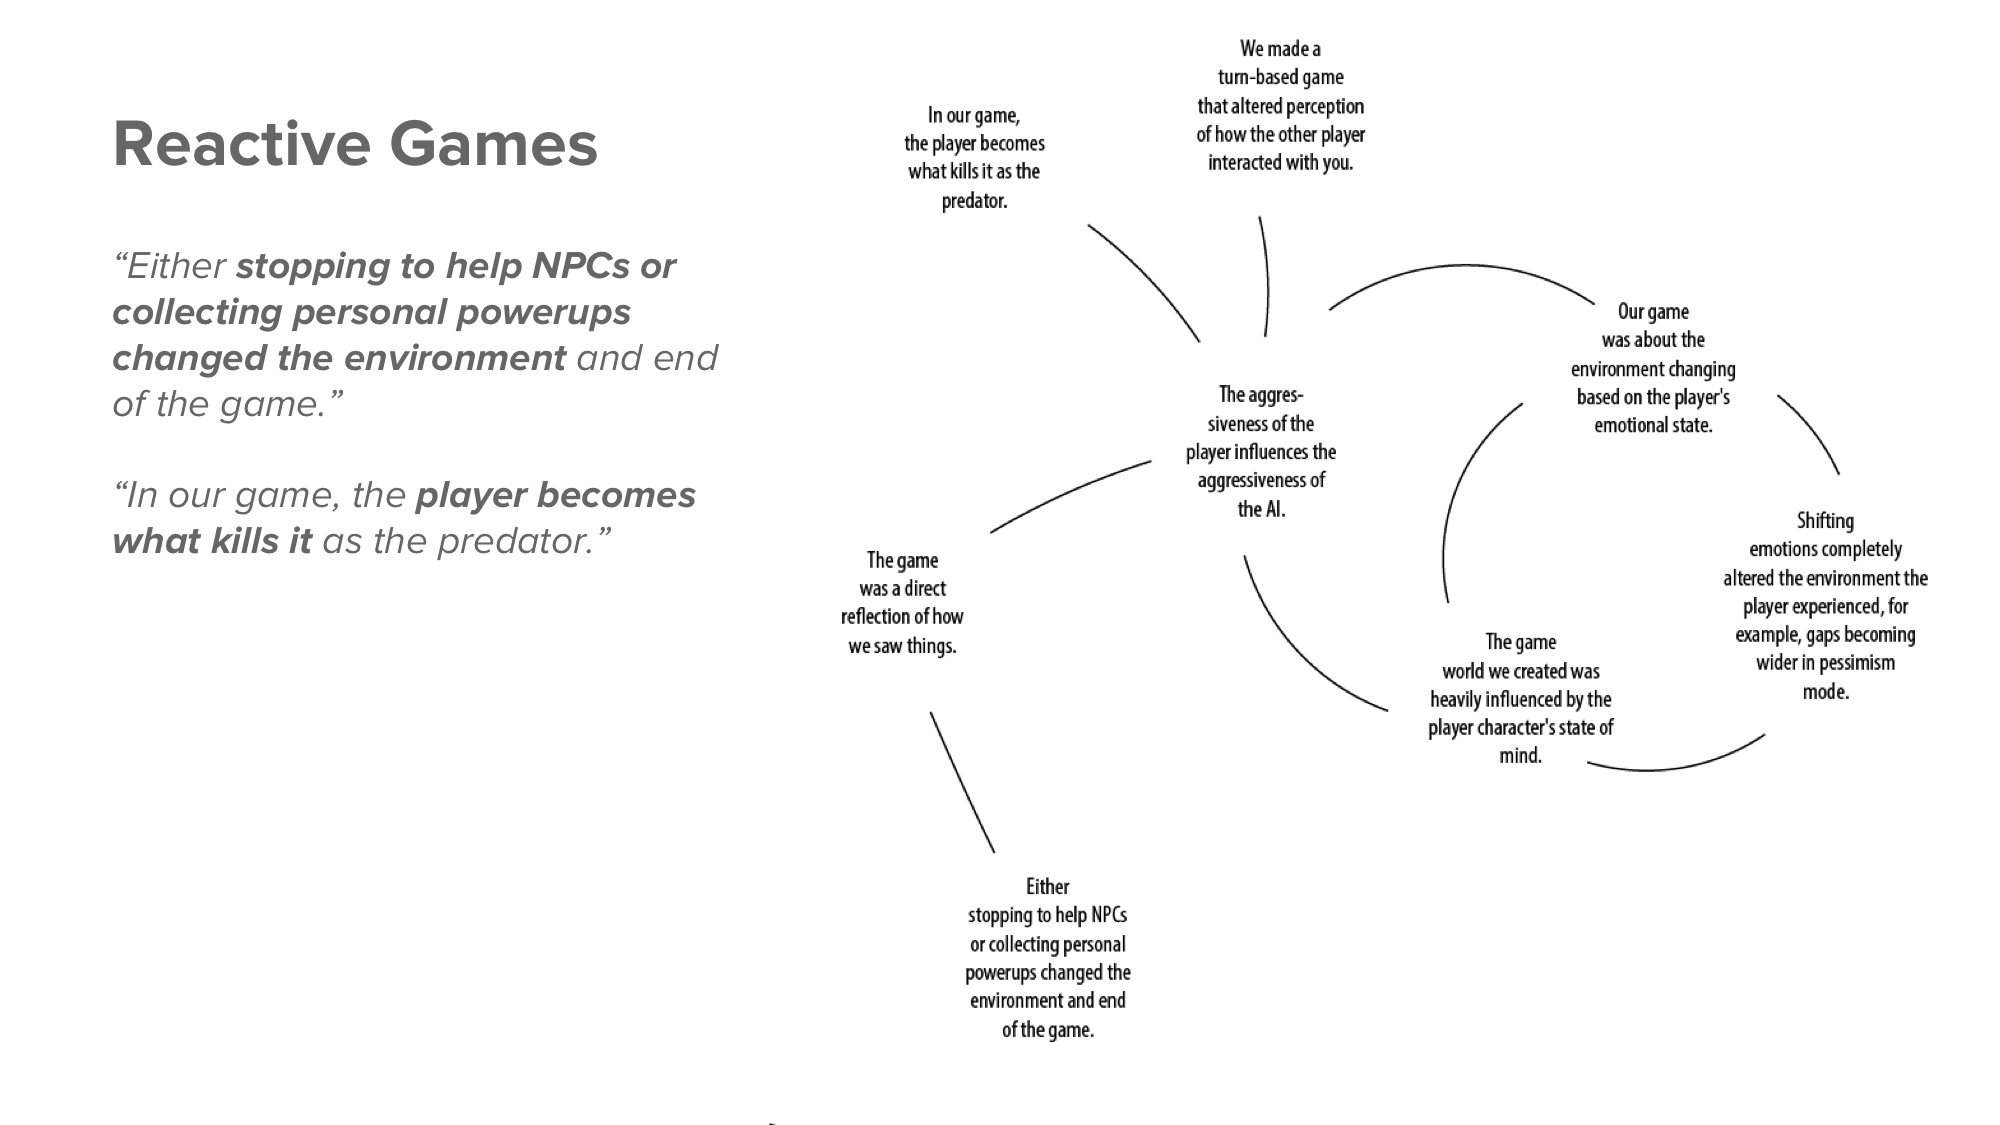 2014.10.17 - -How Are Ideas Connected- Drawing the Design Process of Idea Networks in Global Game Jam- - Meaningful Play 2014 20.jpeg